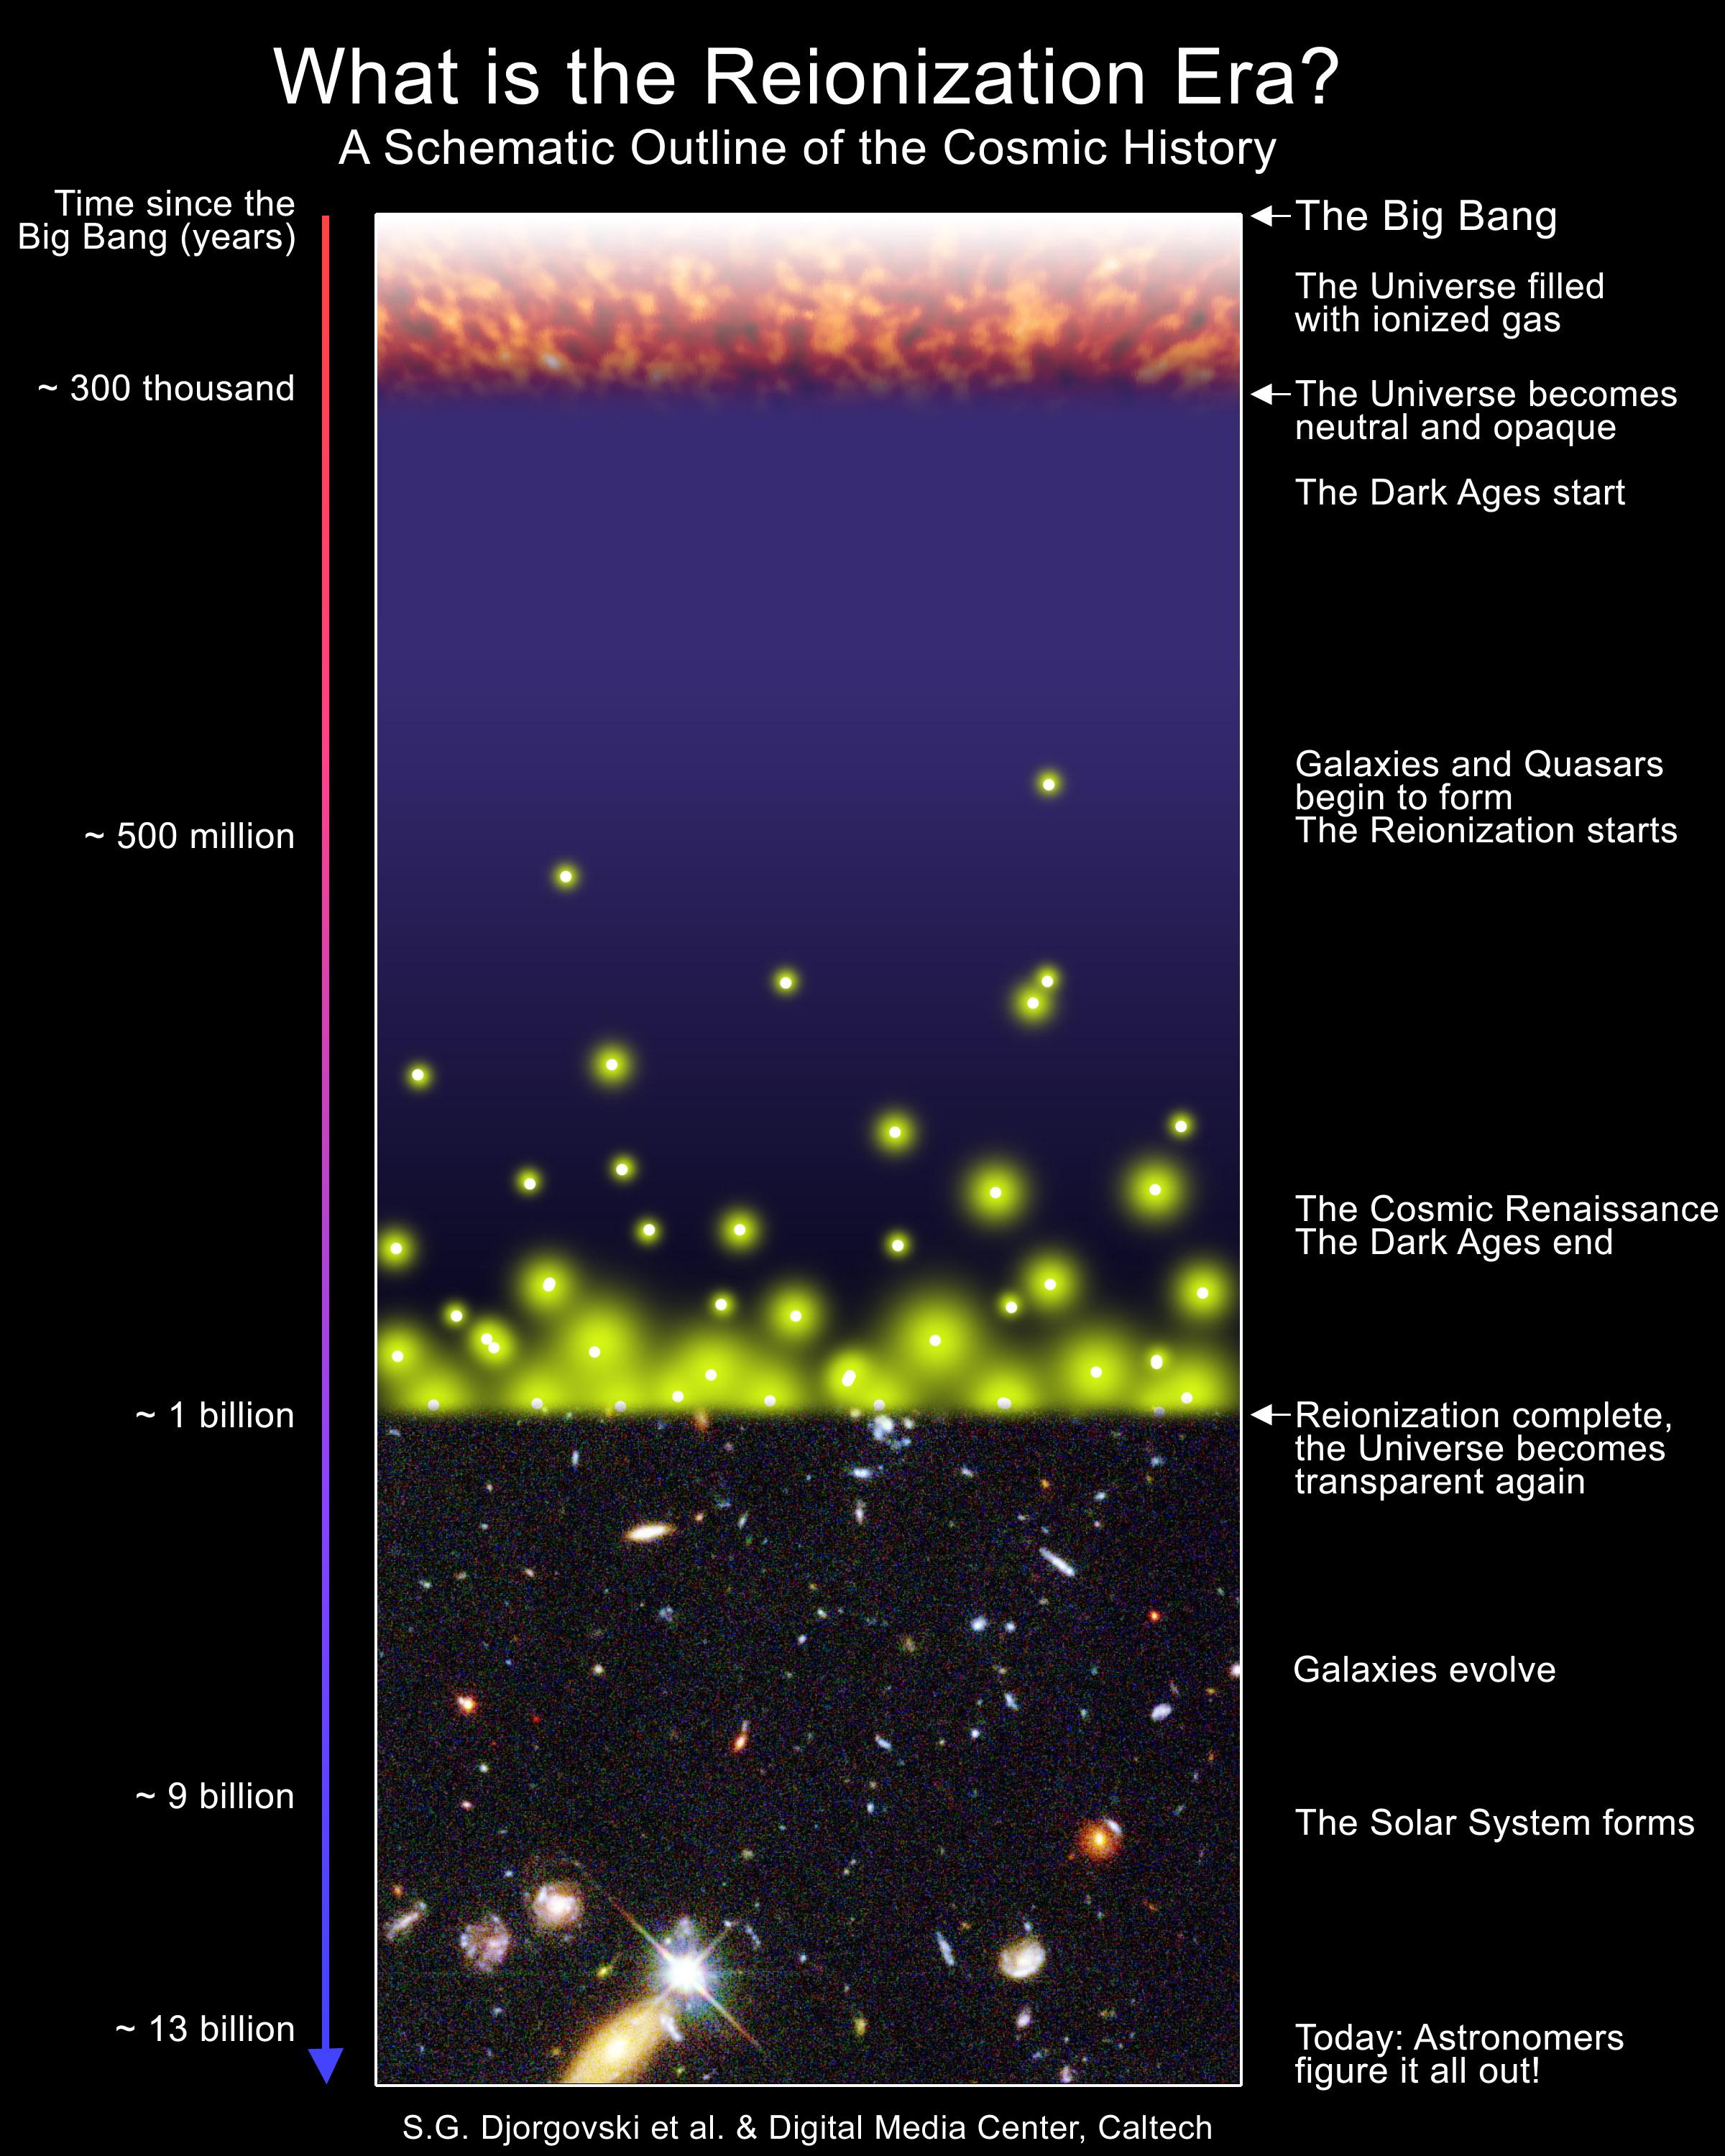 Reionization Era Of the Universe